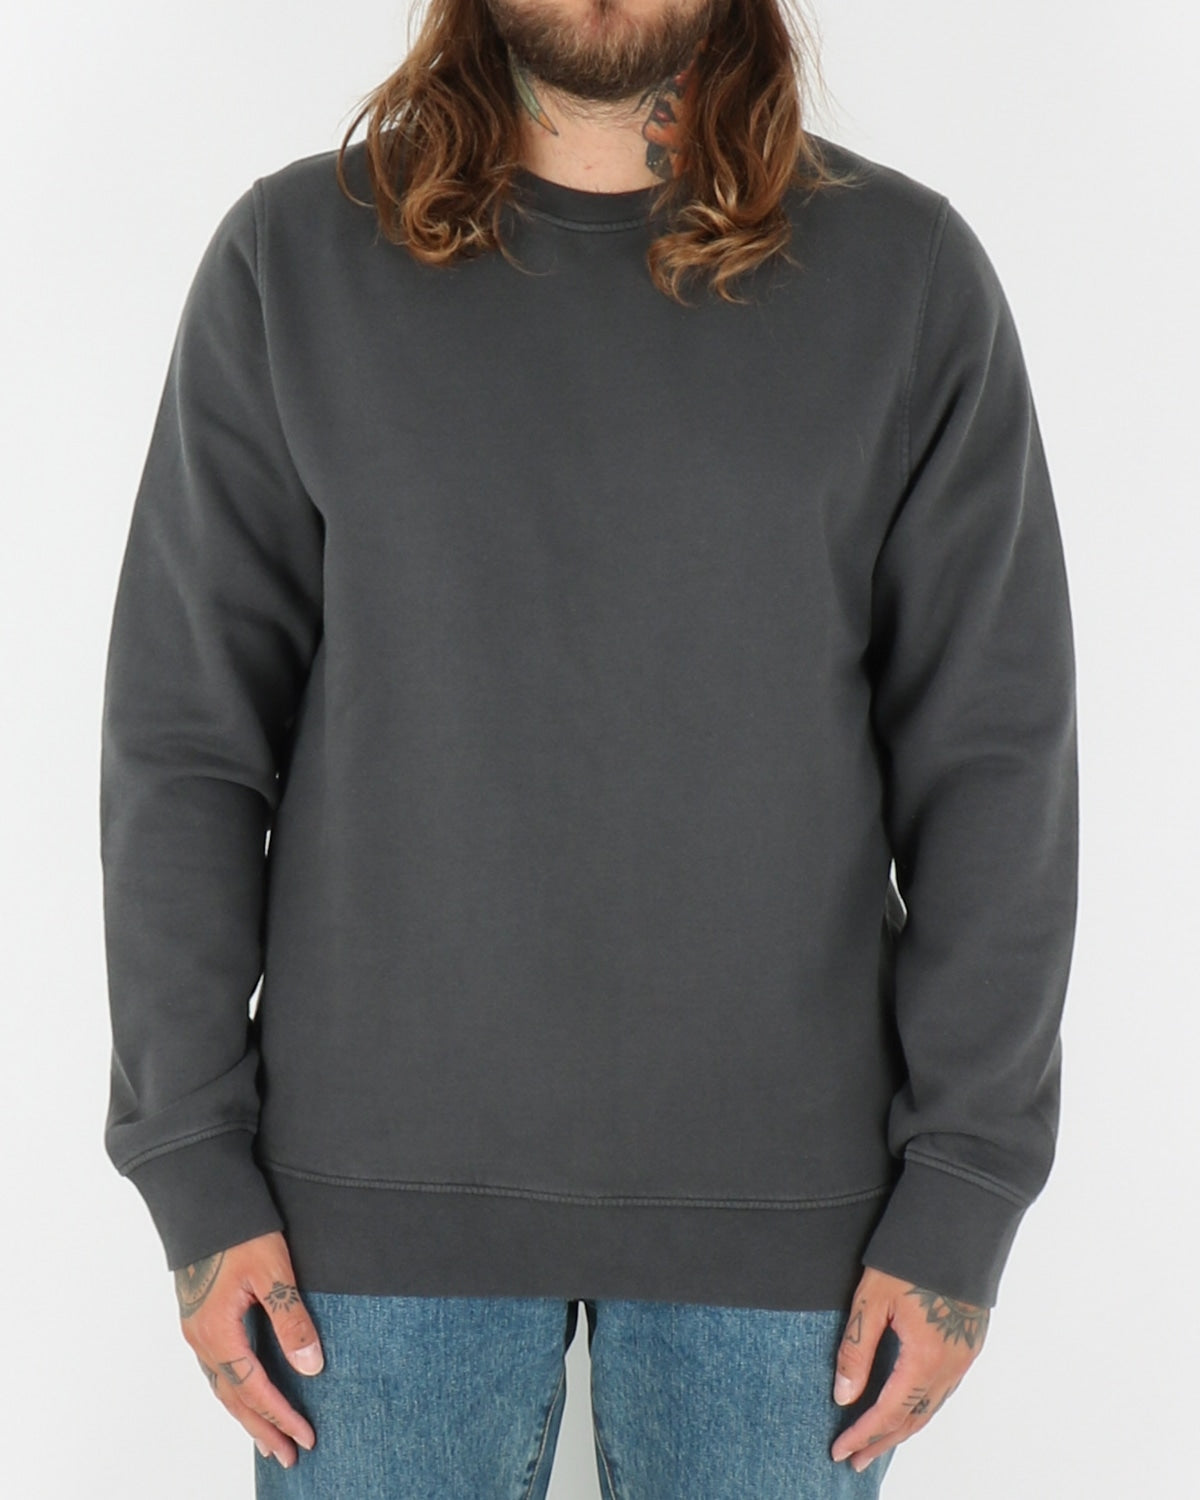 colorful standard_classic organic crew neck_lava grey_1_2